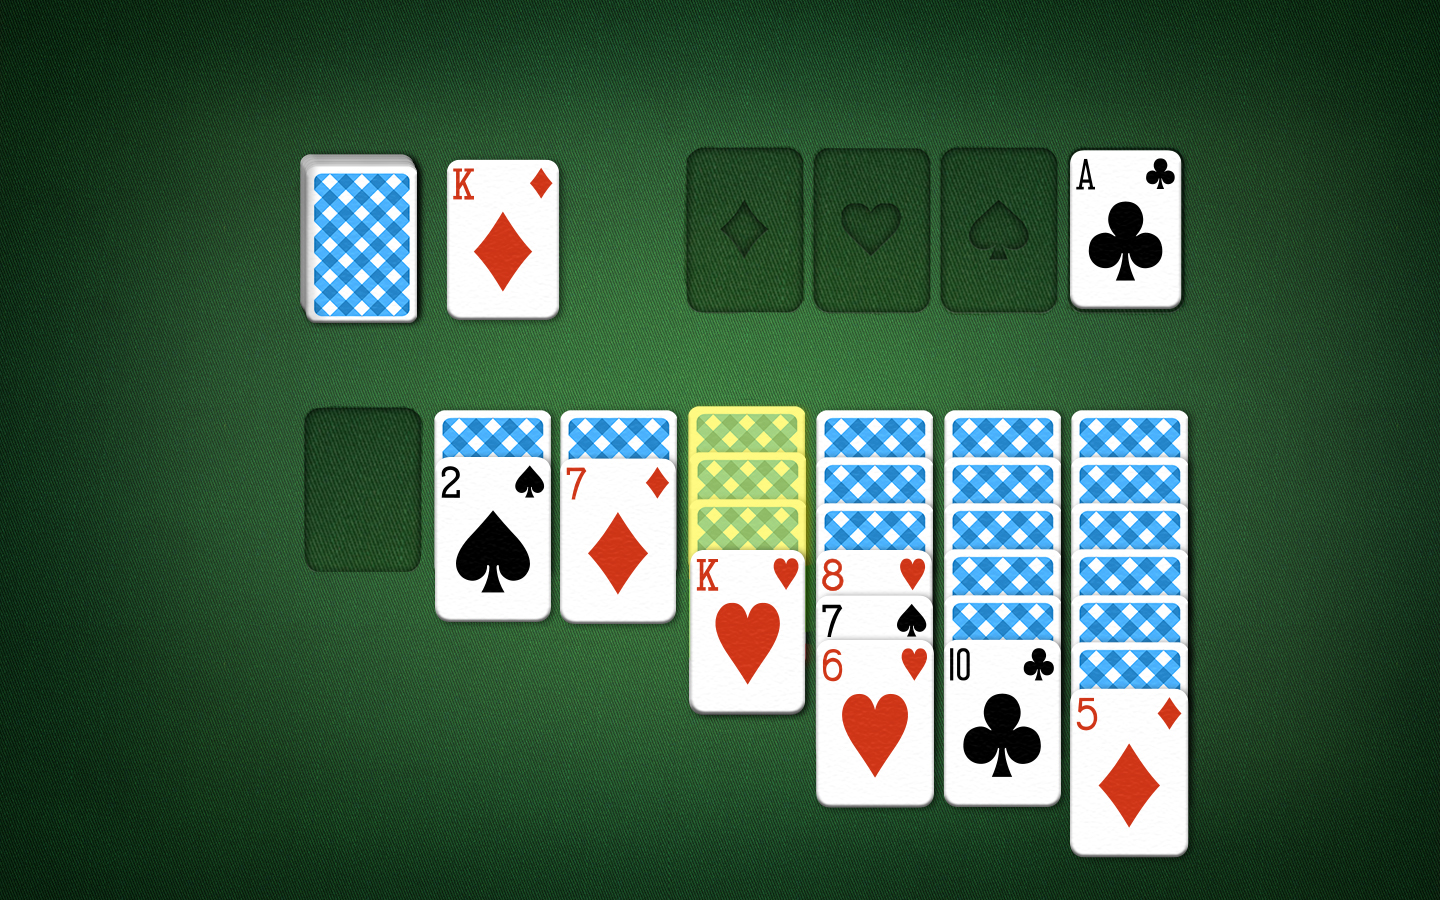 Solitaire Playing Field - King on Empty Panels